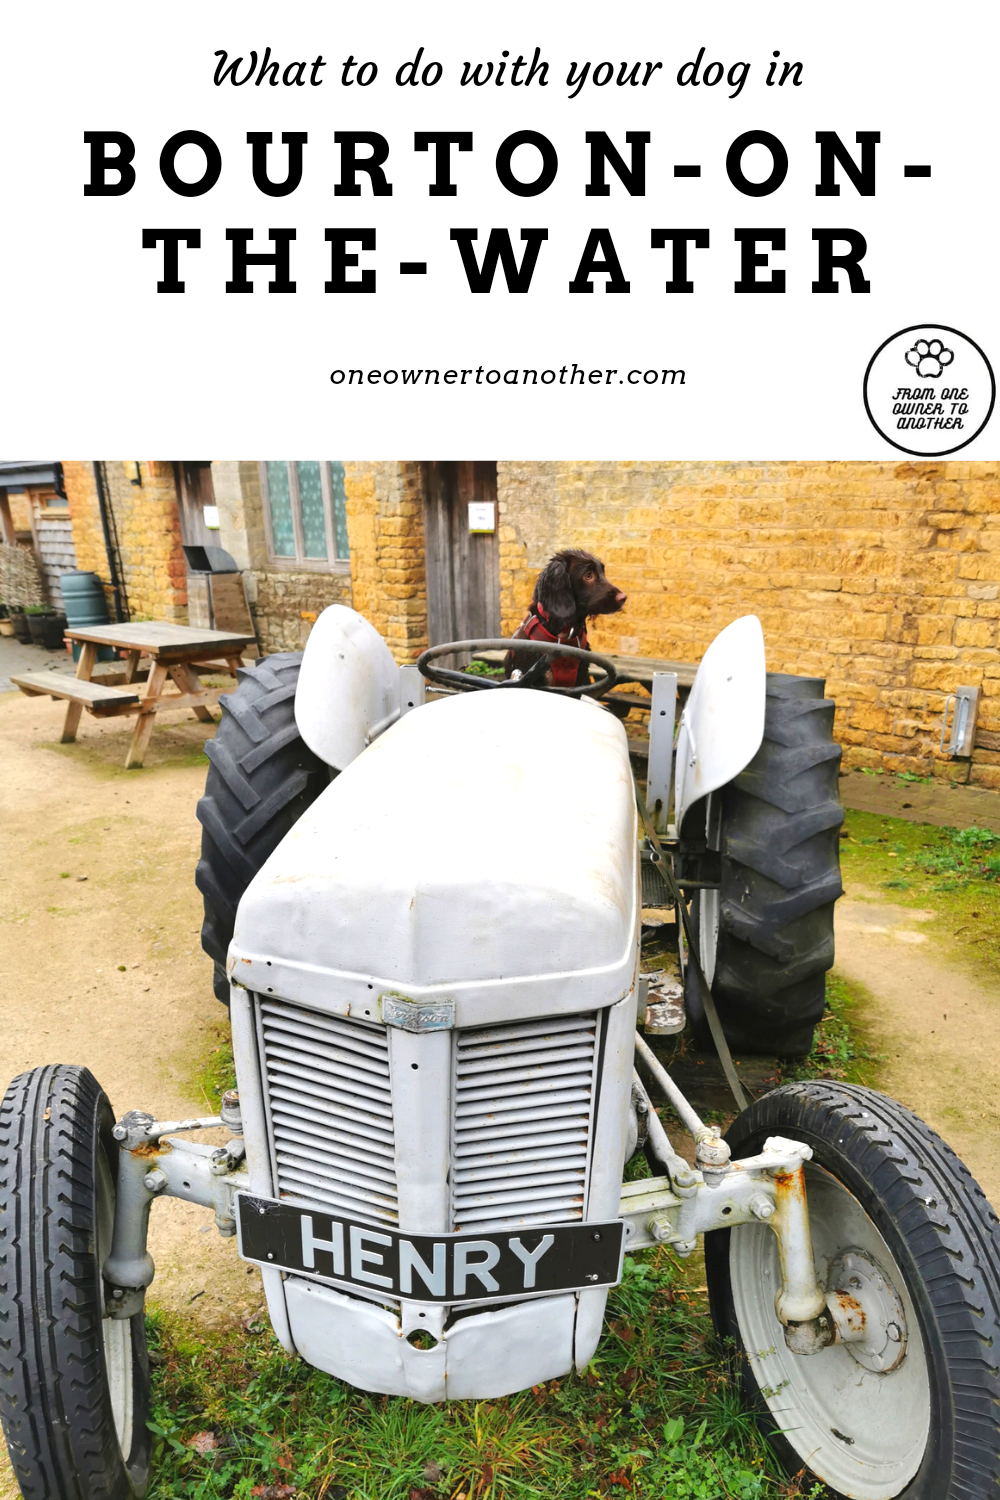 What to do with your dog in Bourton on the Water (the Cotswolds) by From One Owner to Another